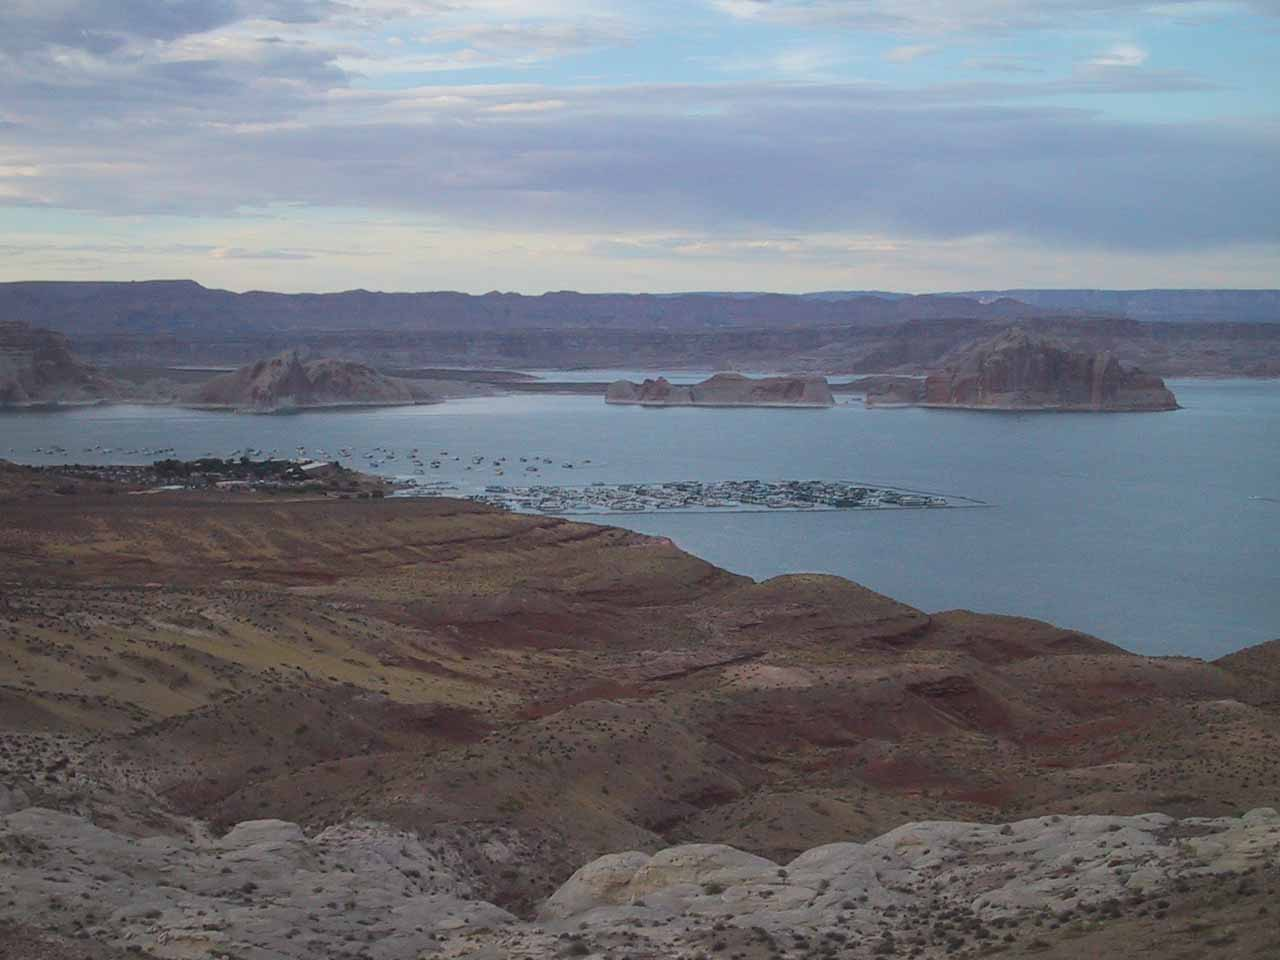 View of Lake Powell and the marina where we did our boat tour